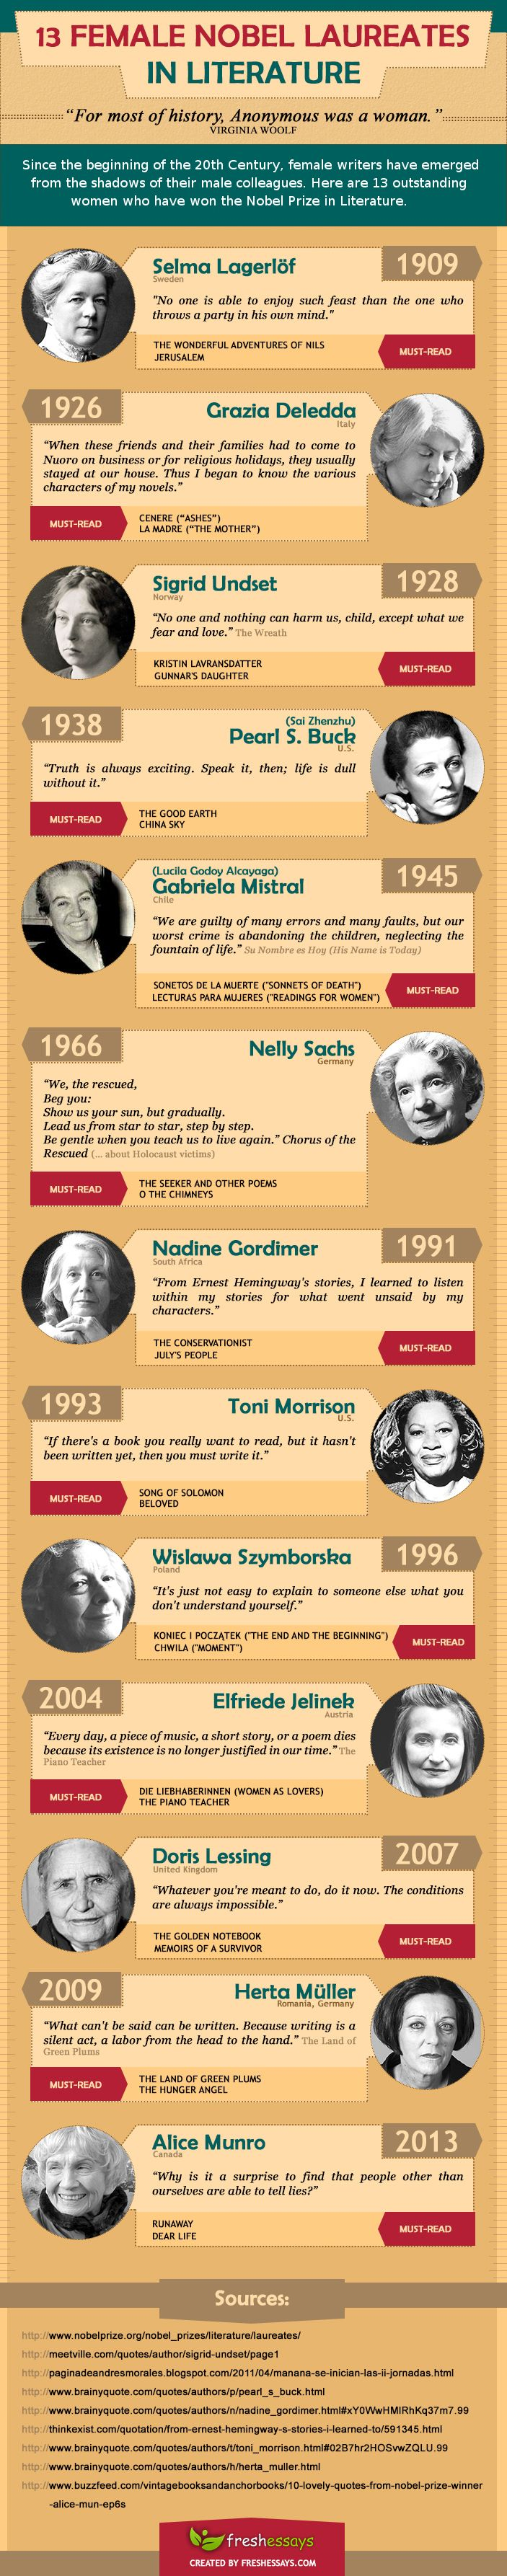 60 Nobel Prize Ideas Nobel Prize Nobel Prize In Literature Writers And Poets